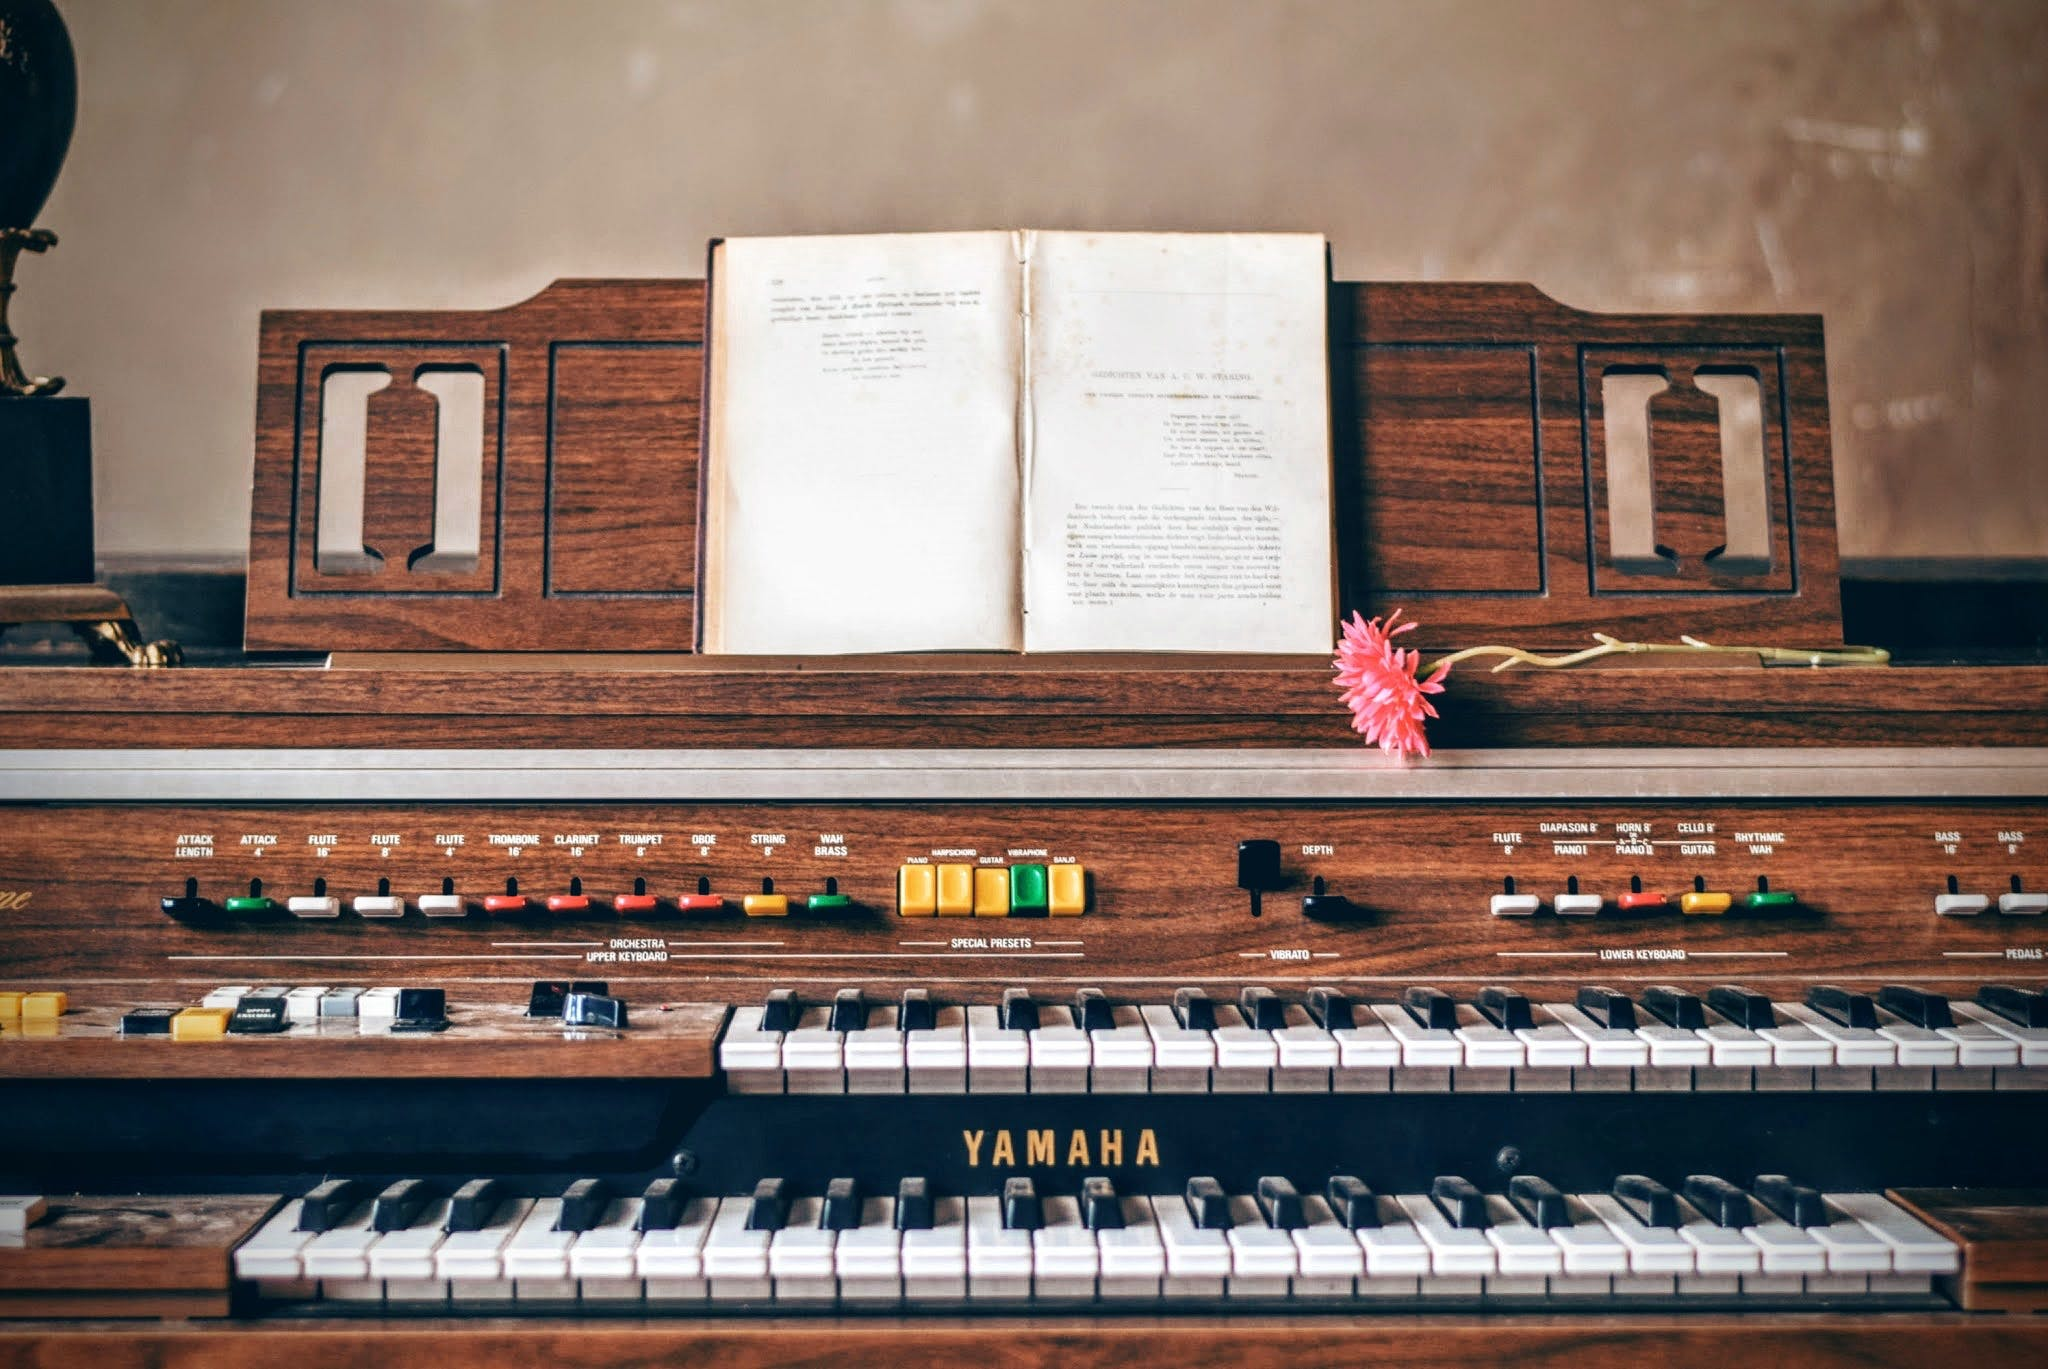 Where have all the organists gone?